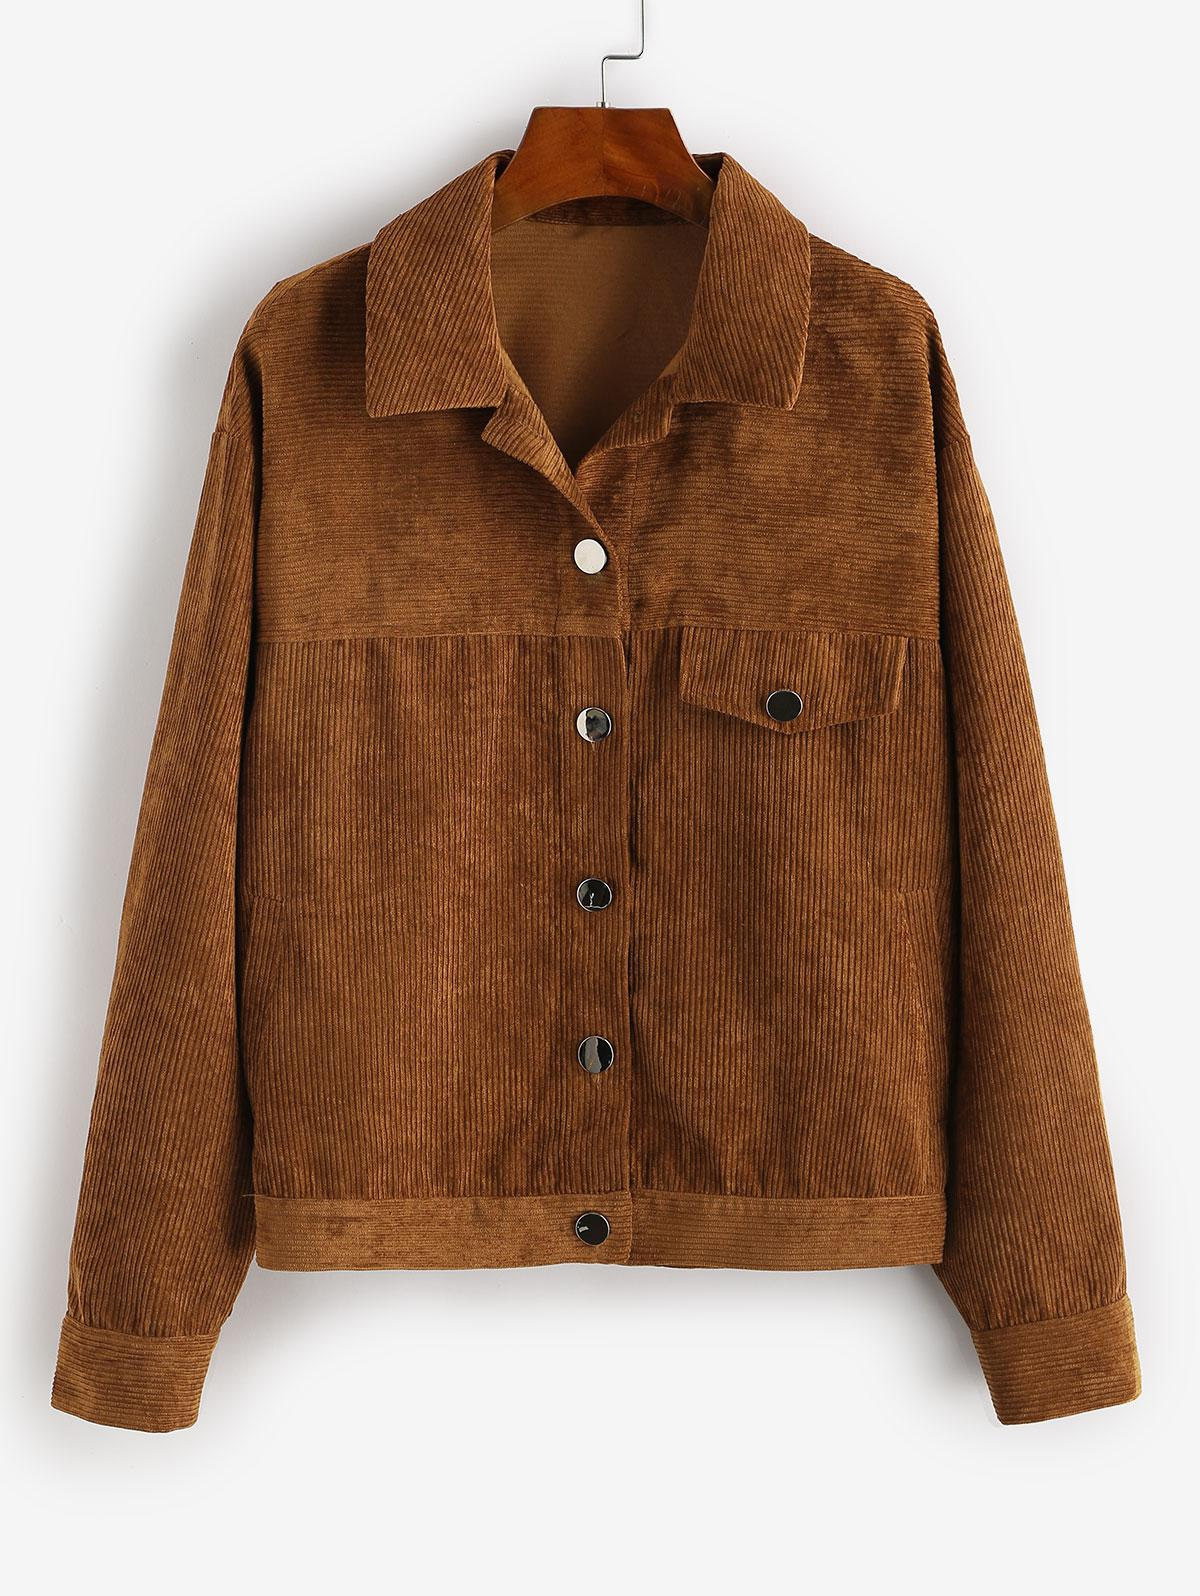 ZAFUL Flap Pocket Corduroy Jacket